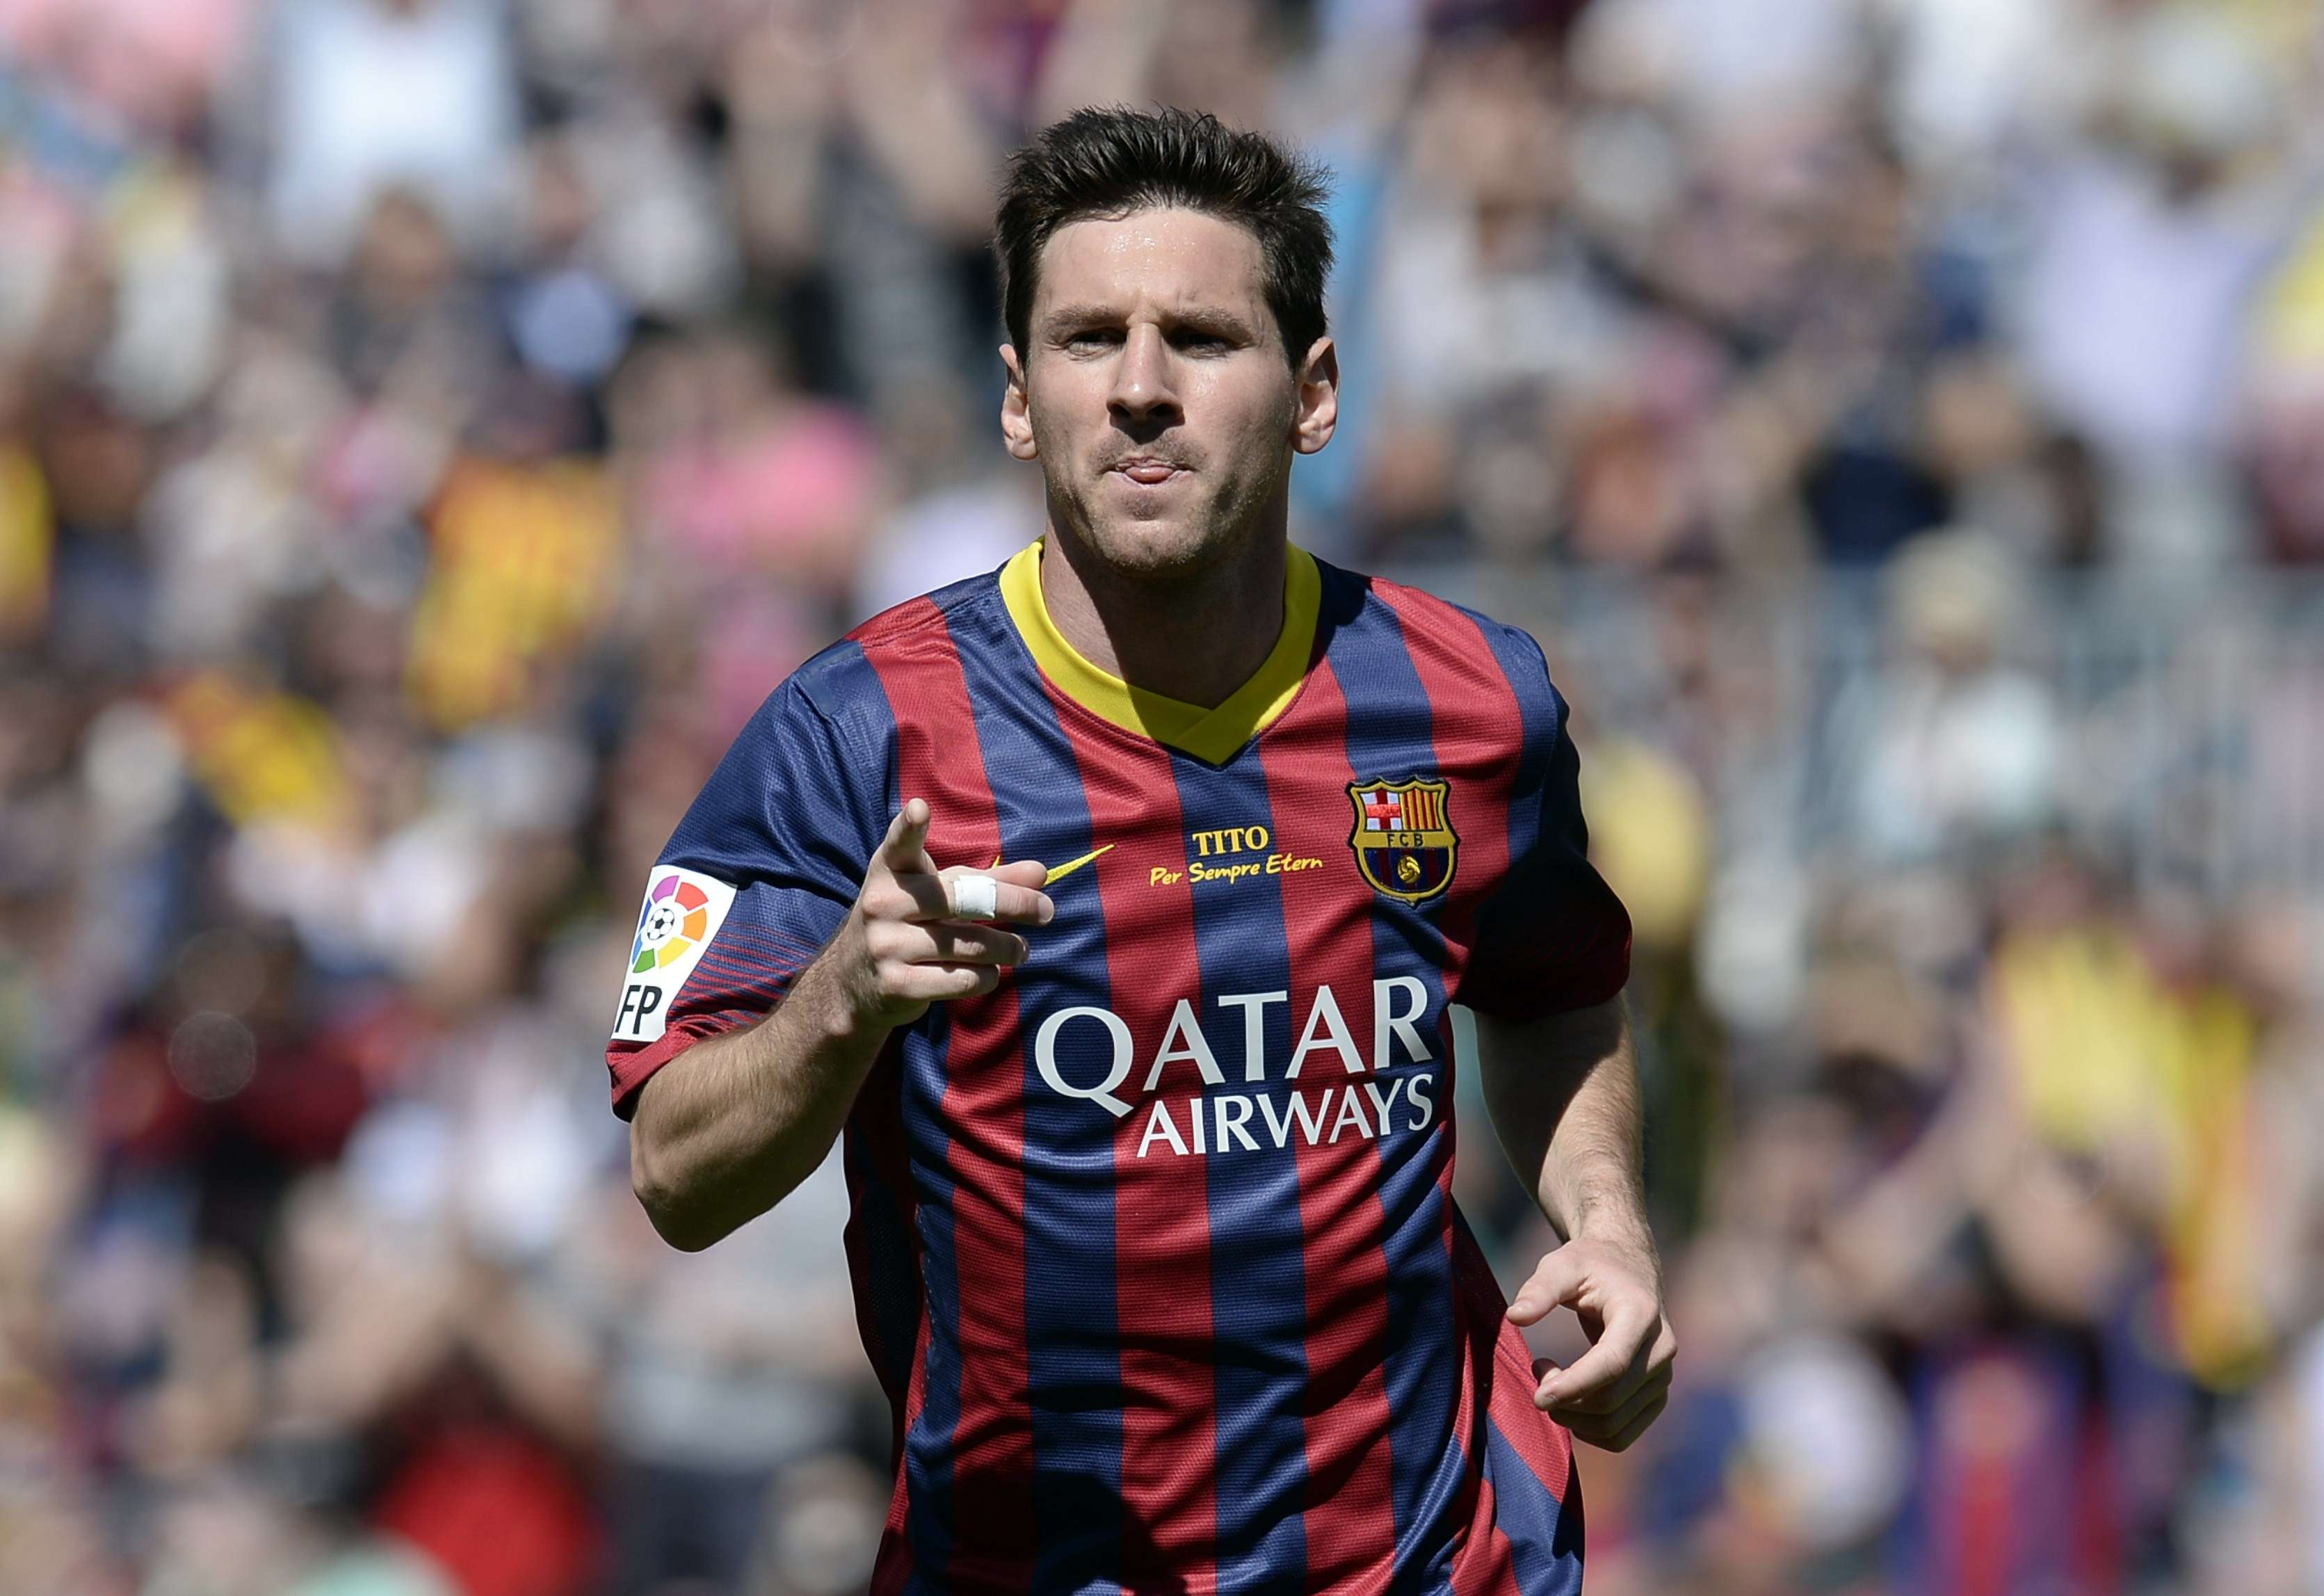 Barcelona doesn't think Messi will leave due to injuries